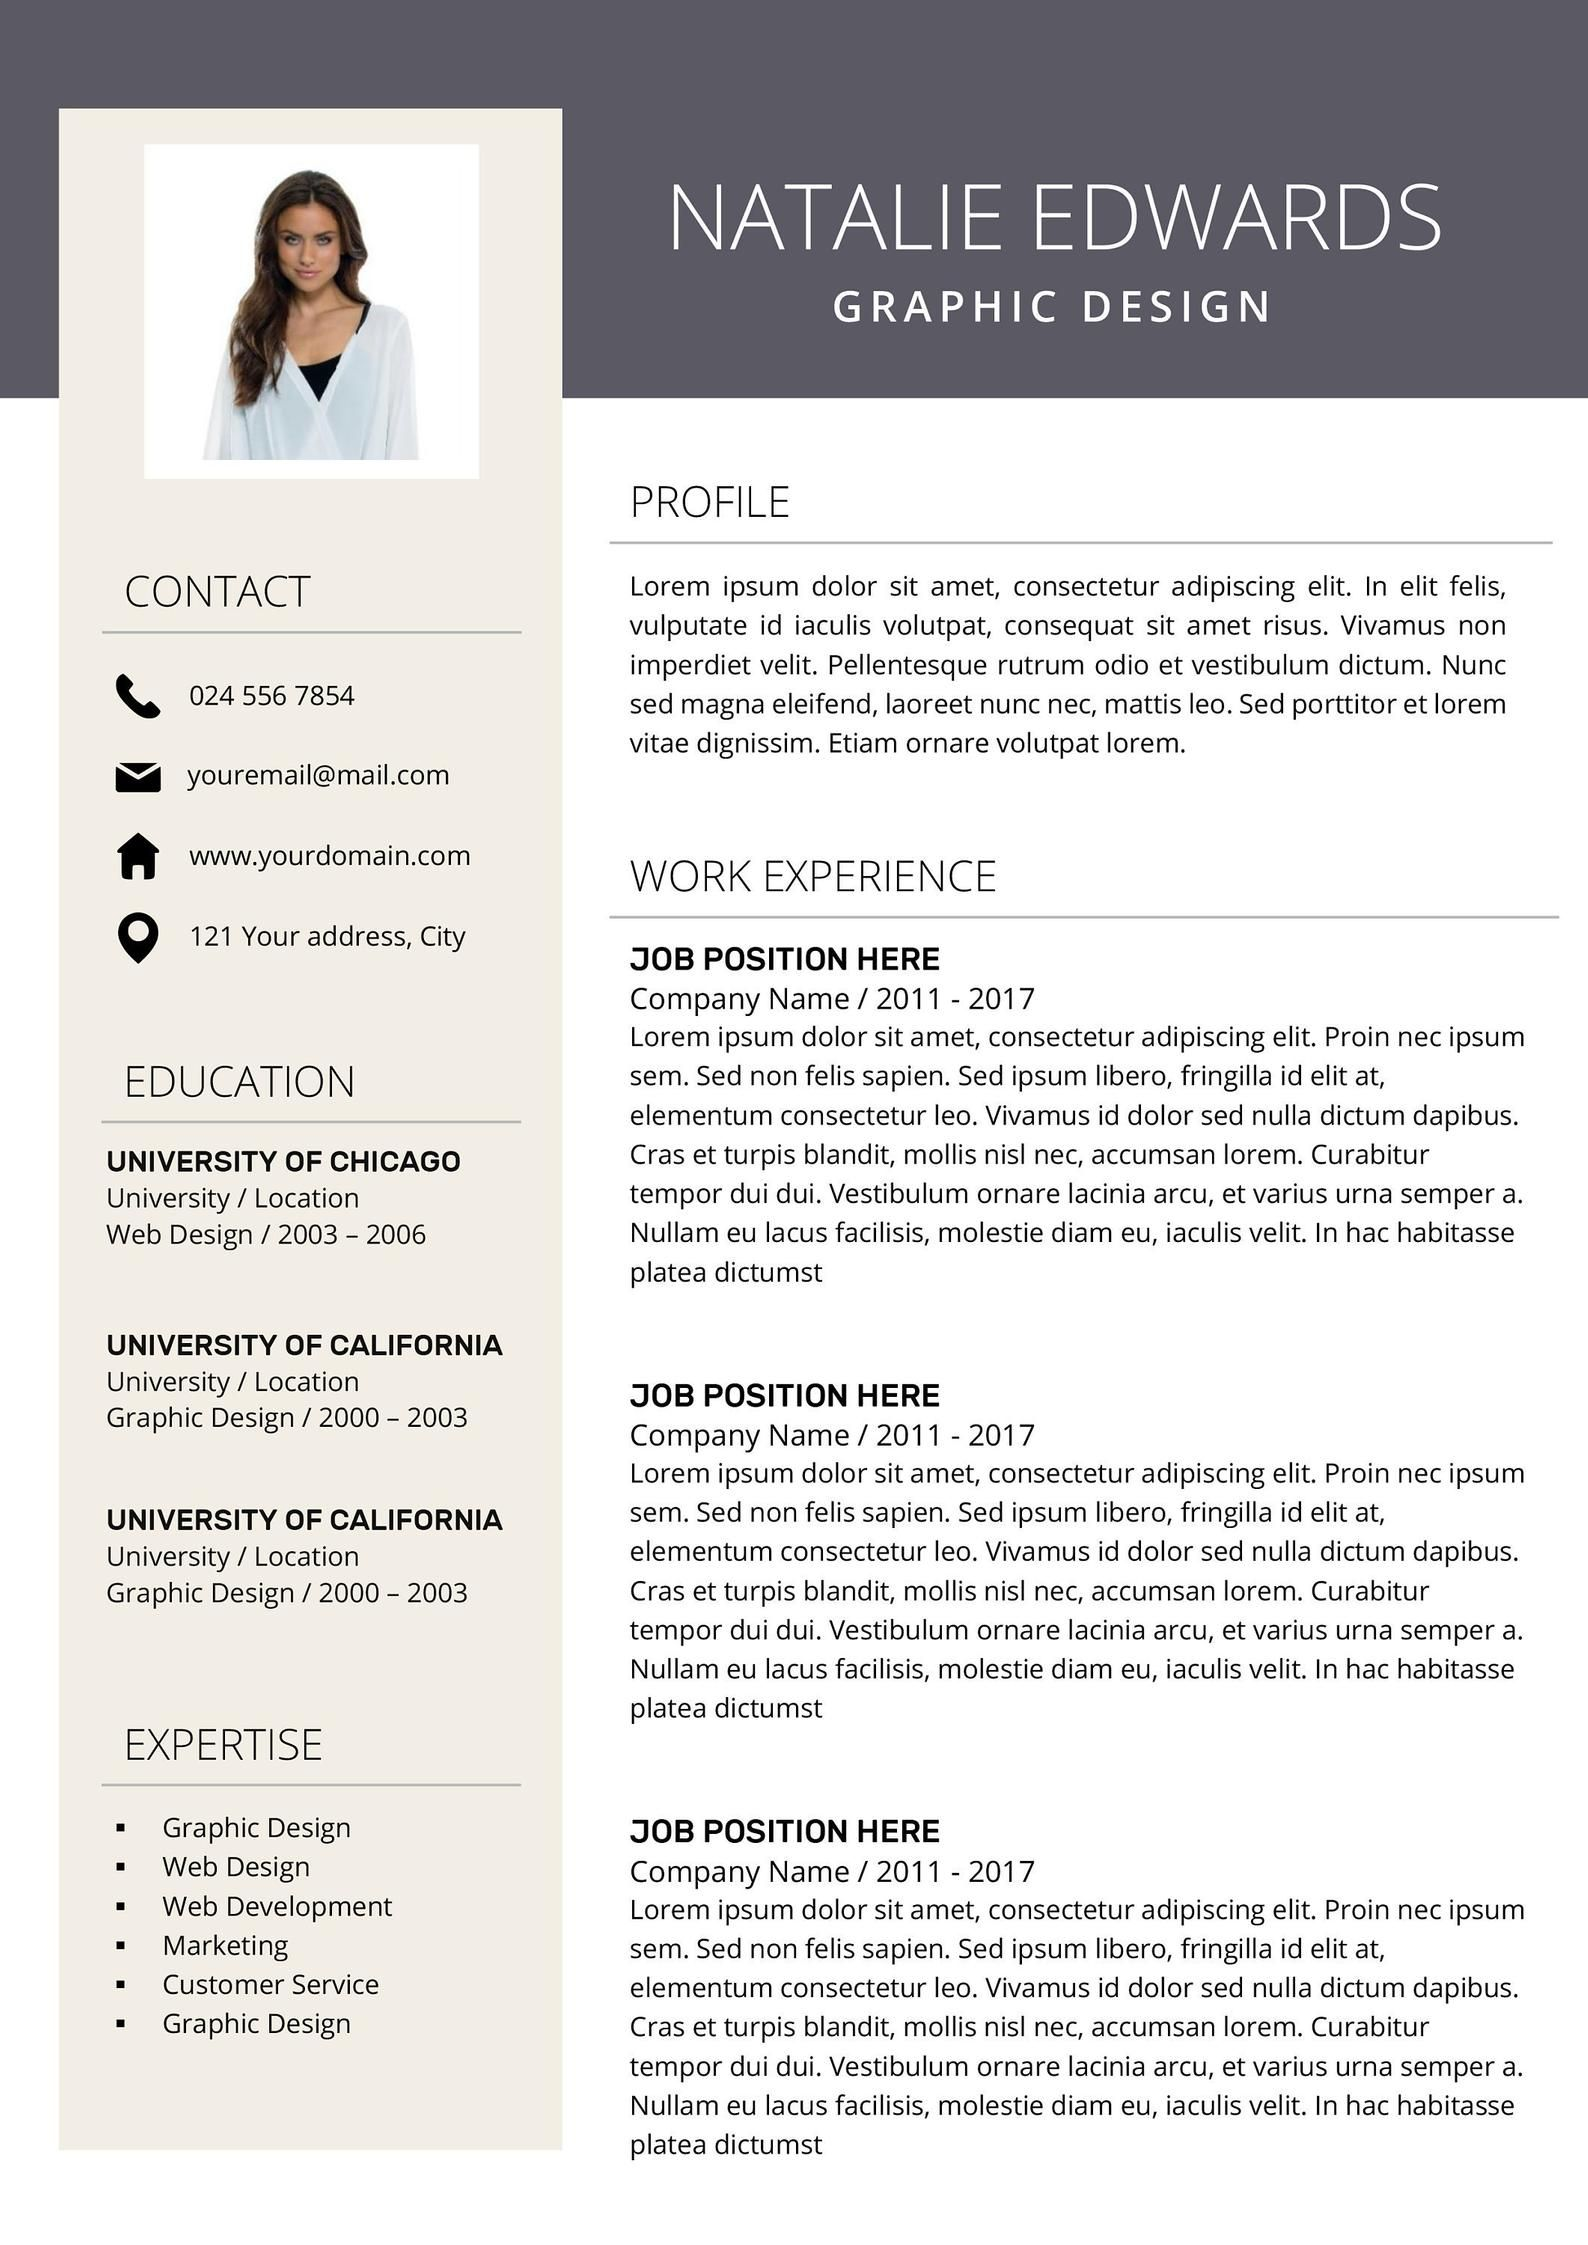 Creative Resume Template Cv Template For Ms Word And Pages Professional Resume Modern Resume Design Resume Instant Download In 2021 Creative Resume Modern Resume Design Creative Resume Templates